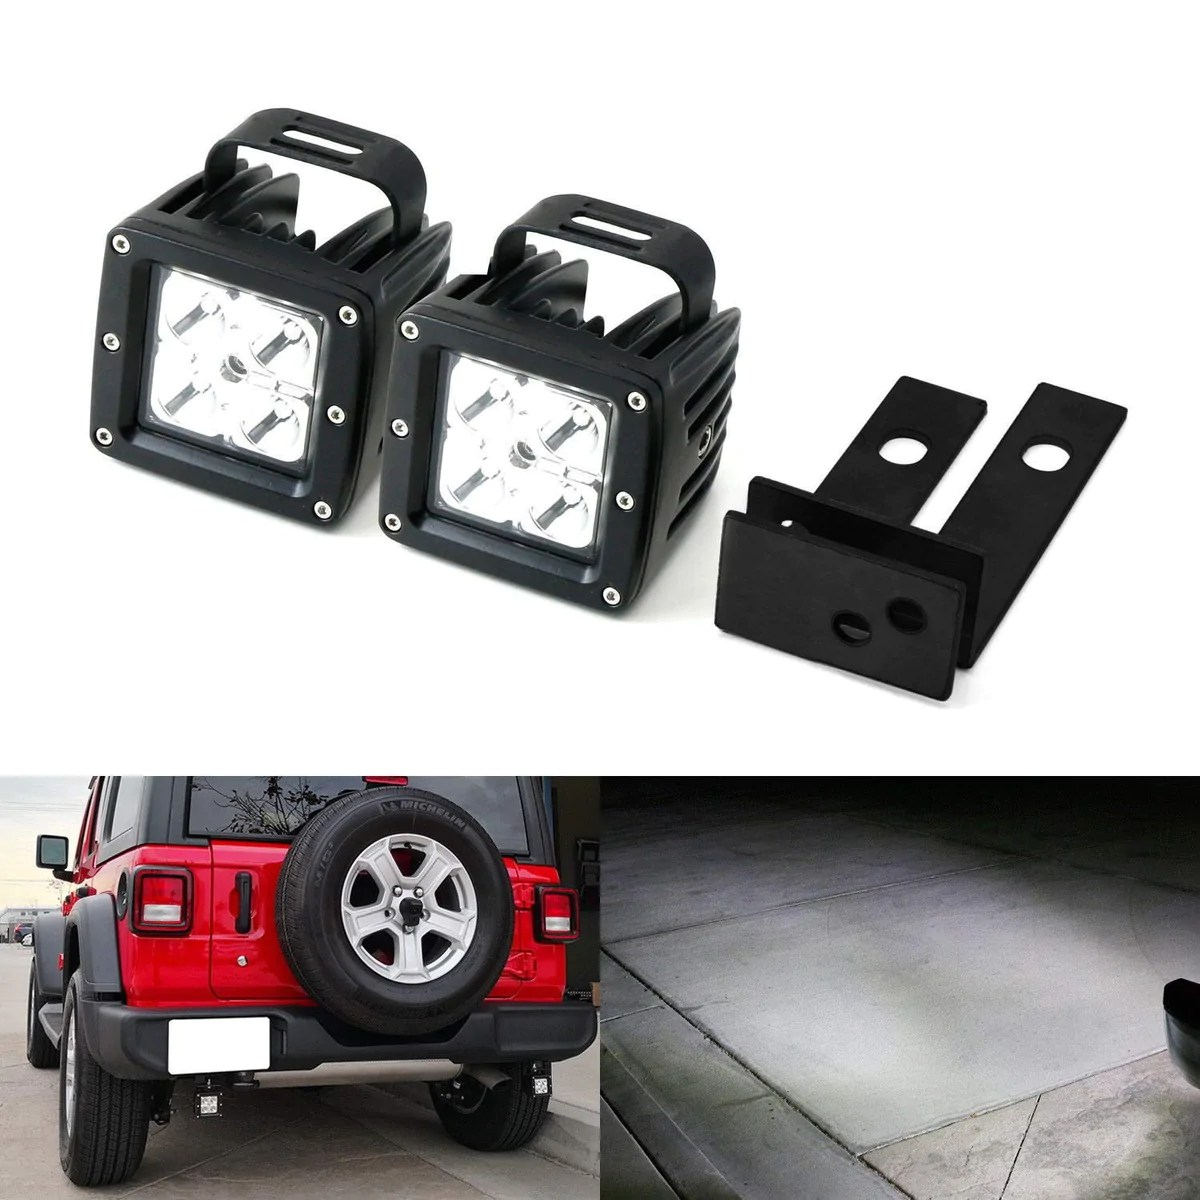 rear bumper searchlight reverse led pod light kit for 2018 up jeep wrangler jl includes 2 20w high power cree led pods rear bumper frame mounting  [ 1200 x 1200 Pixel ]